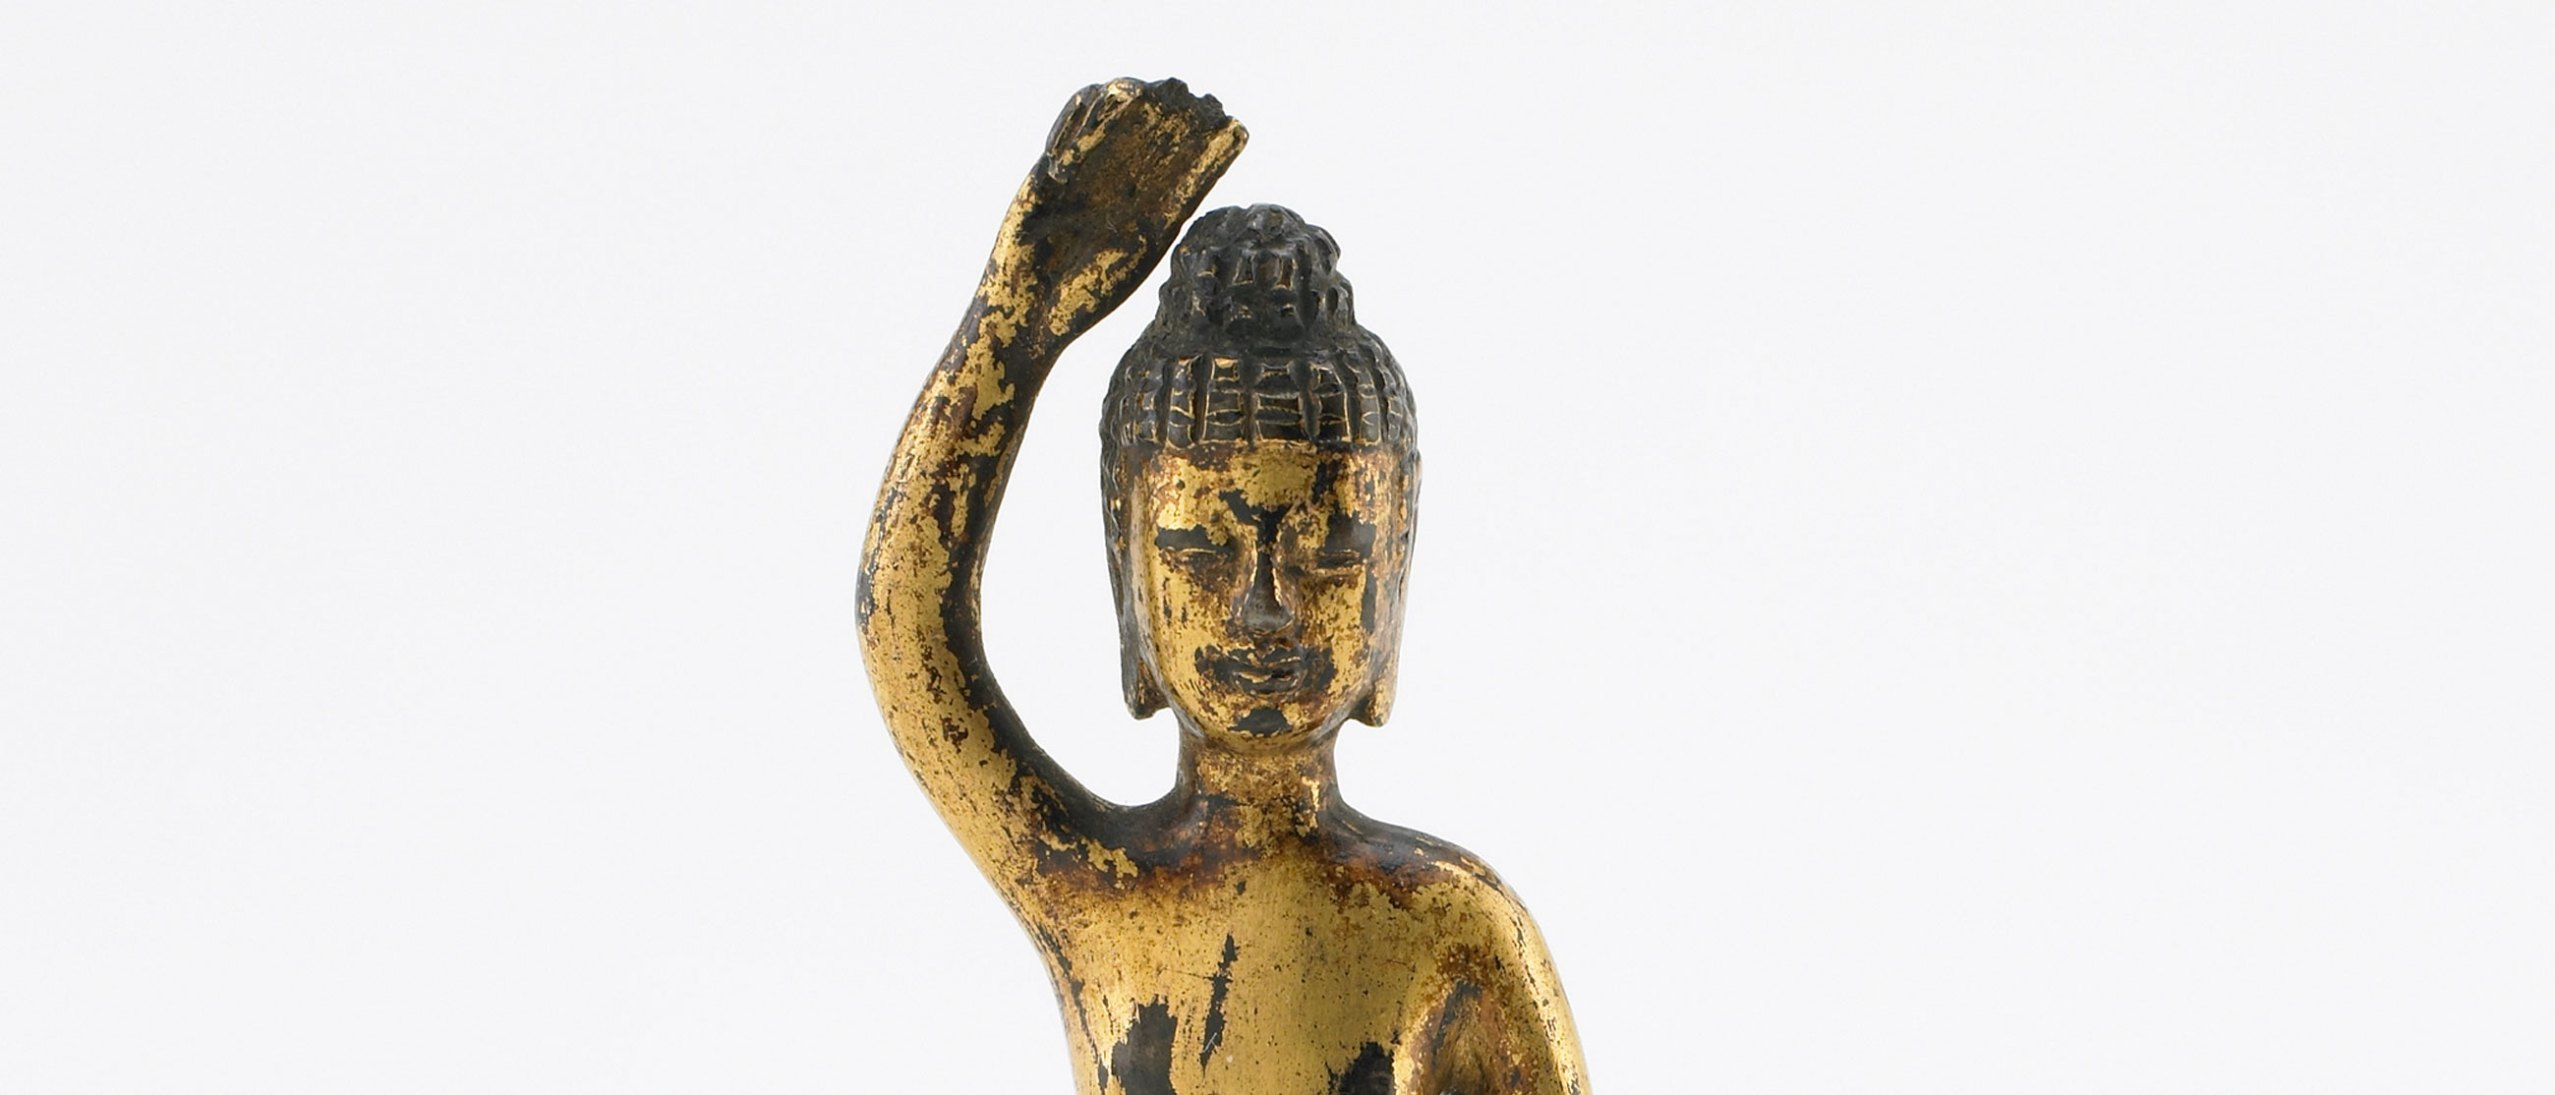 Detail (top half) of The Buddha at Birth, gilt bronze sculpture of a Buddha with his arm raised